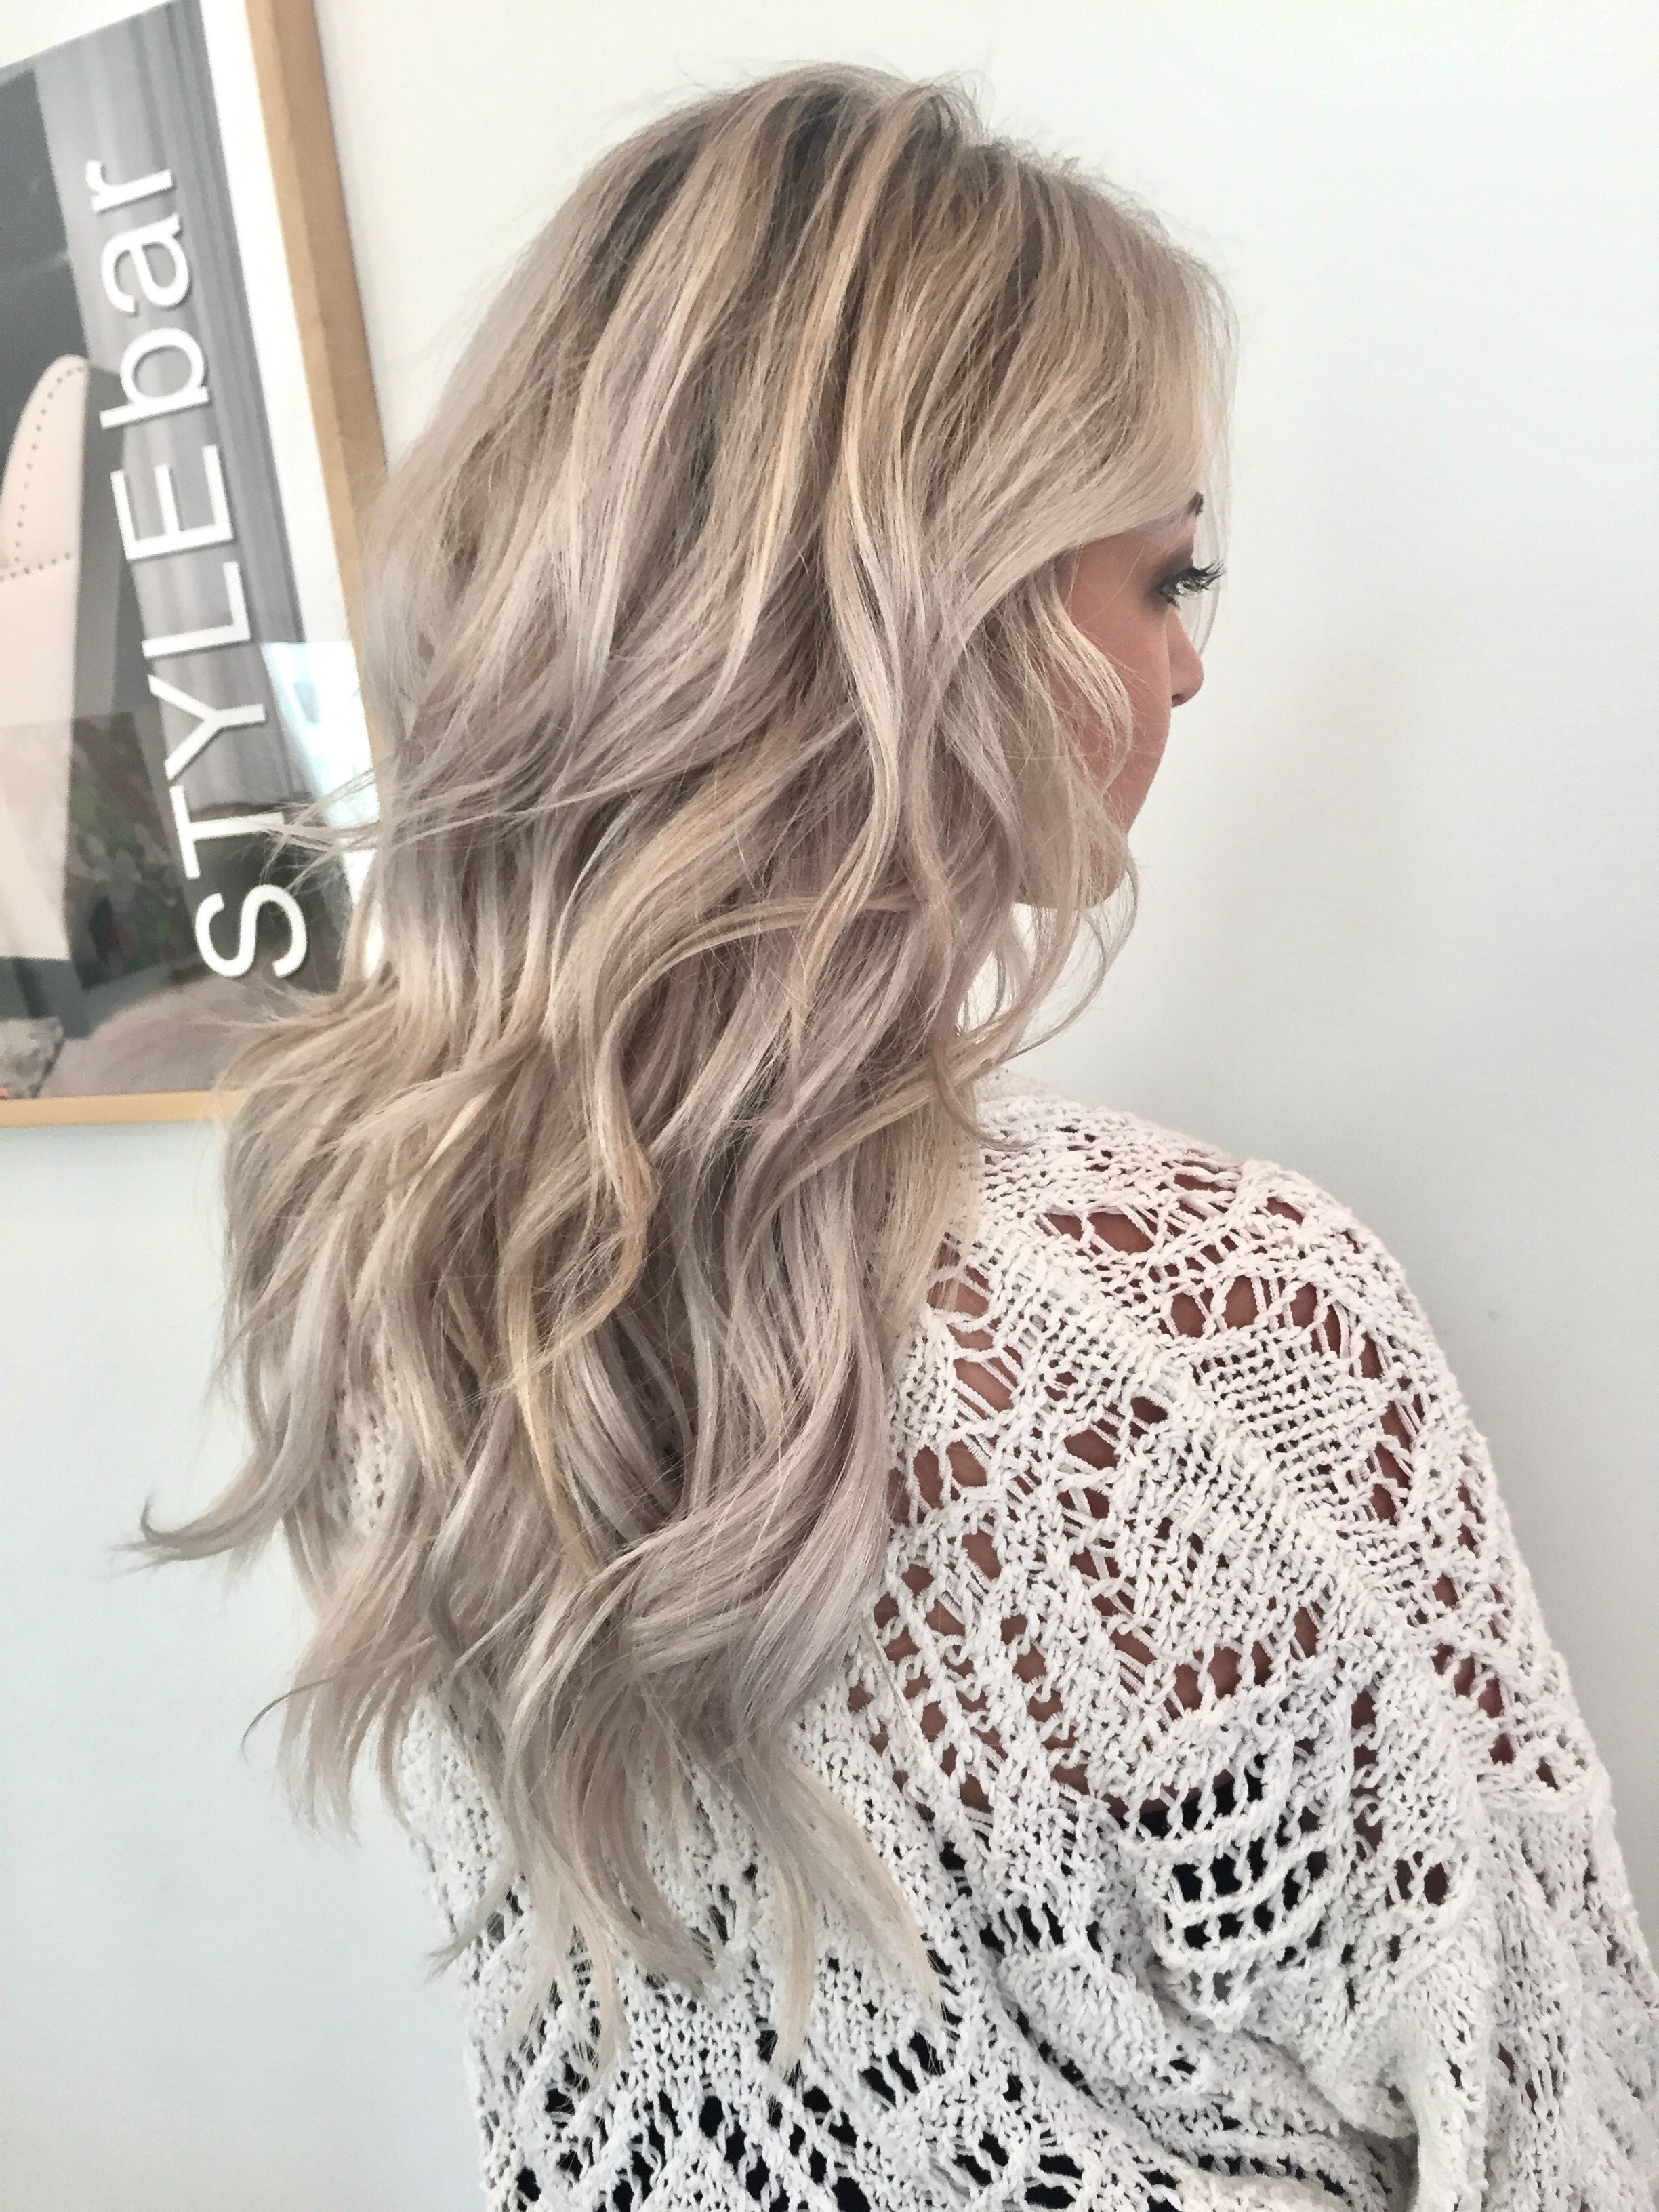 Stylebar Chattanooga Ice Blonde Bright Blonde Texture Foiled